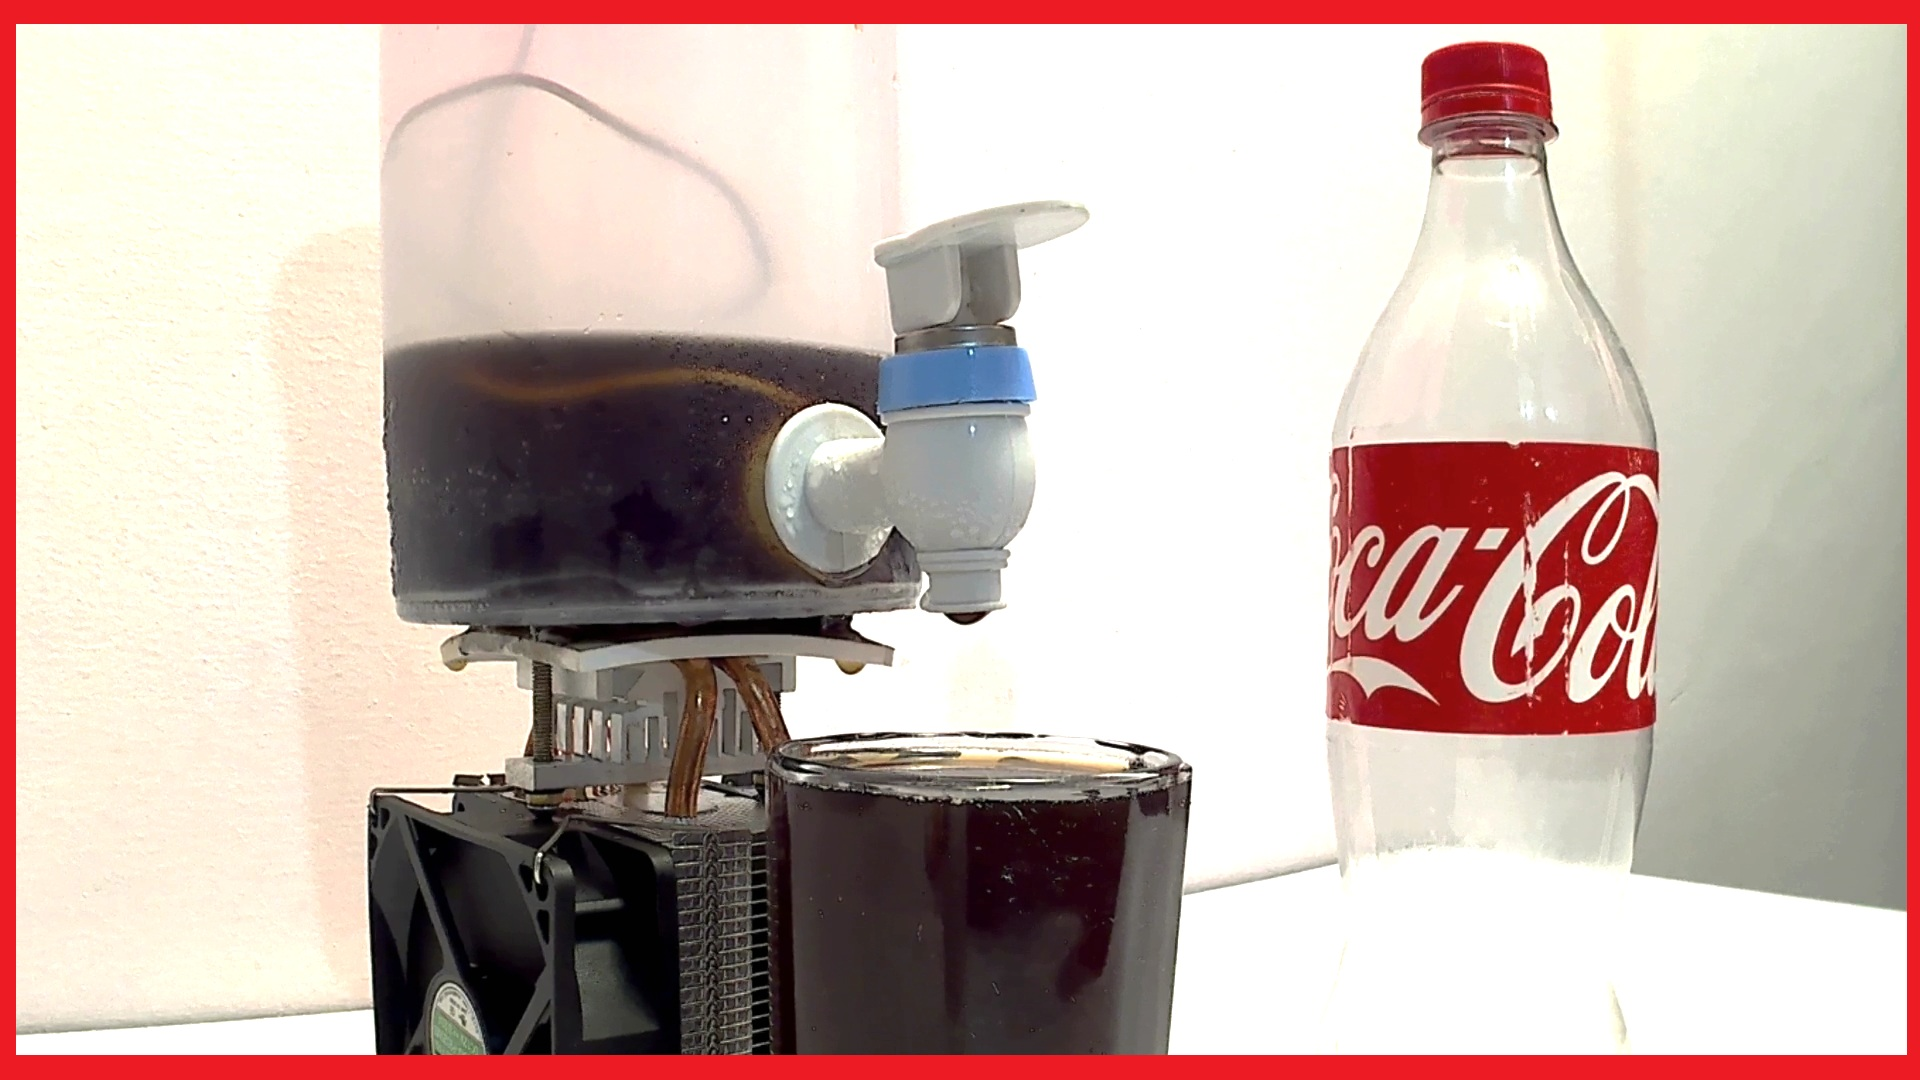 How To Make Coca Cola Soda Cooler Dispenser Fountain Machine | DIY | Life Hacks | Robogeeks